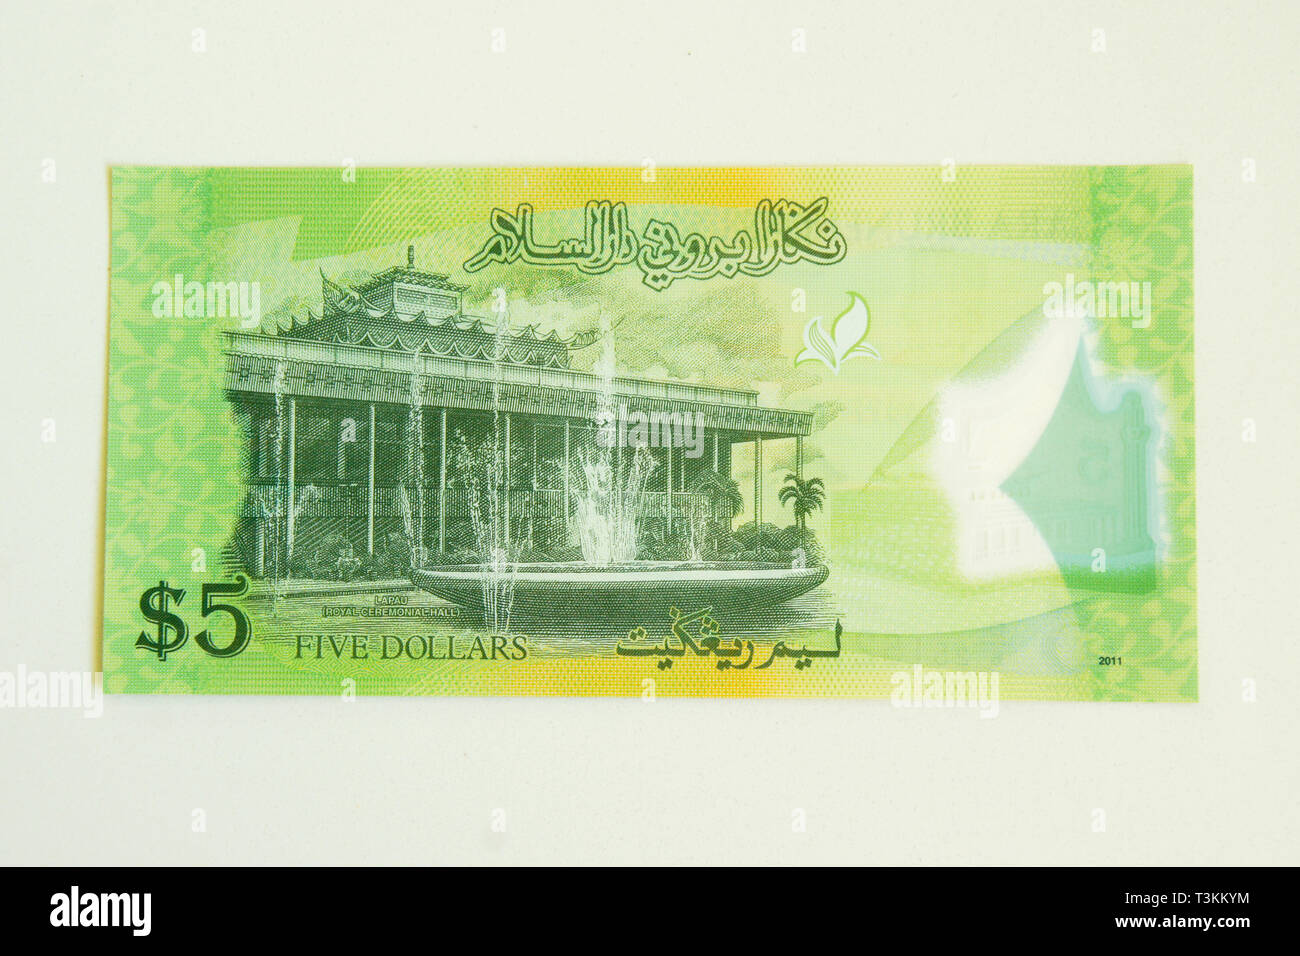 Currency of the Sultanate of Brunei (ringgit, reverse side of note) Stock Photo